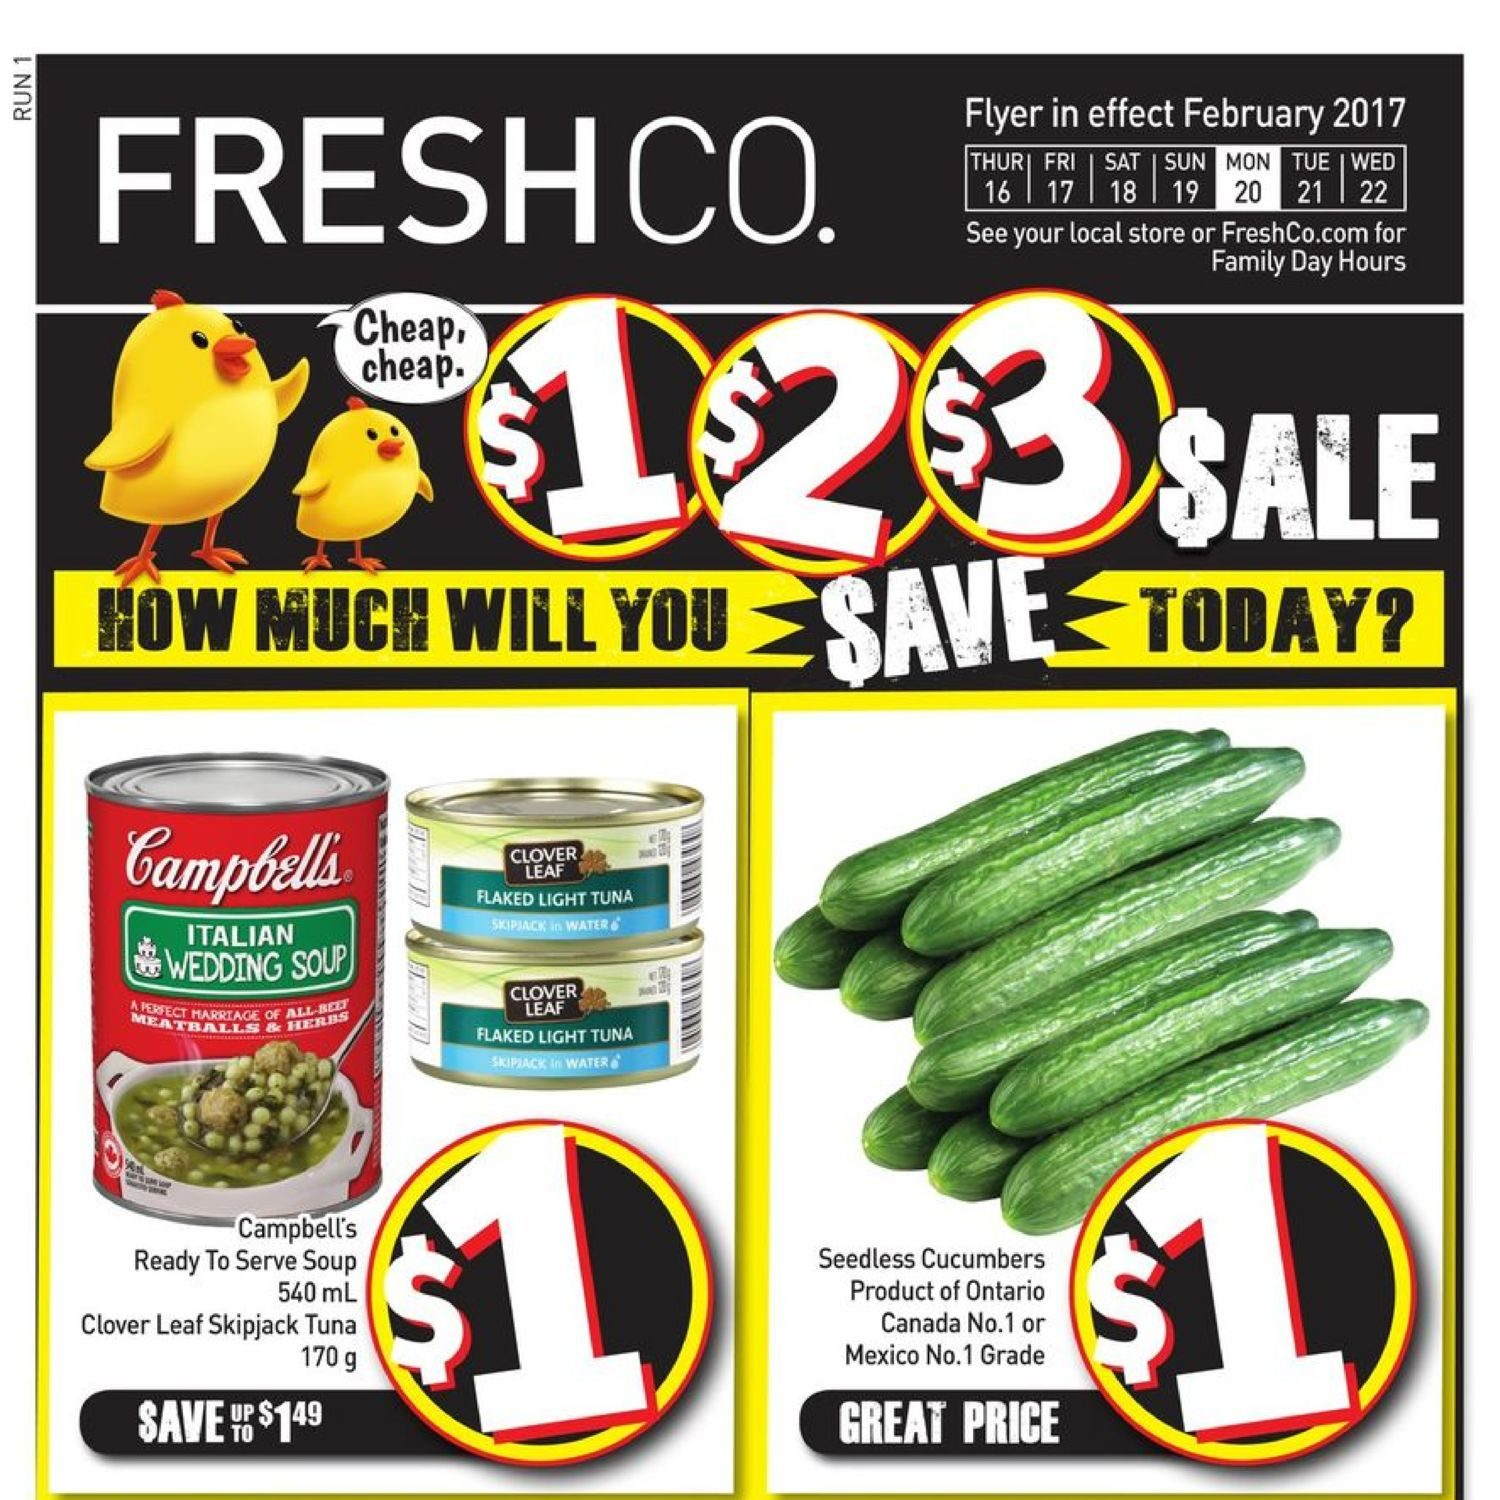 Fresh Co Weekly Flyer - Weekly - $1, $2, $3 Sale - Feb 16 – 22